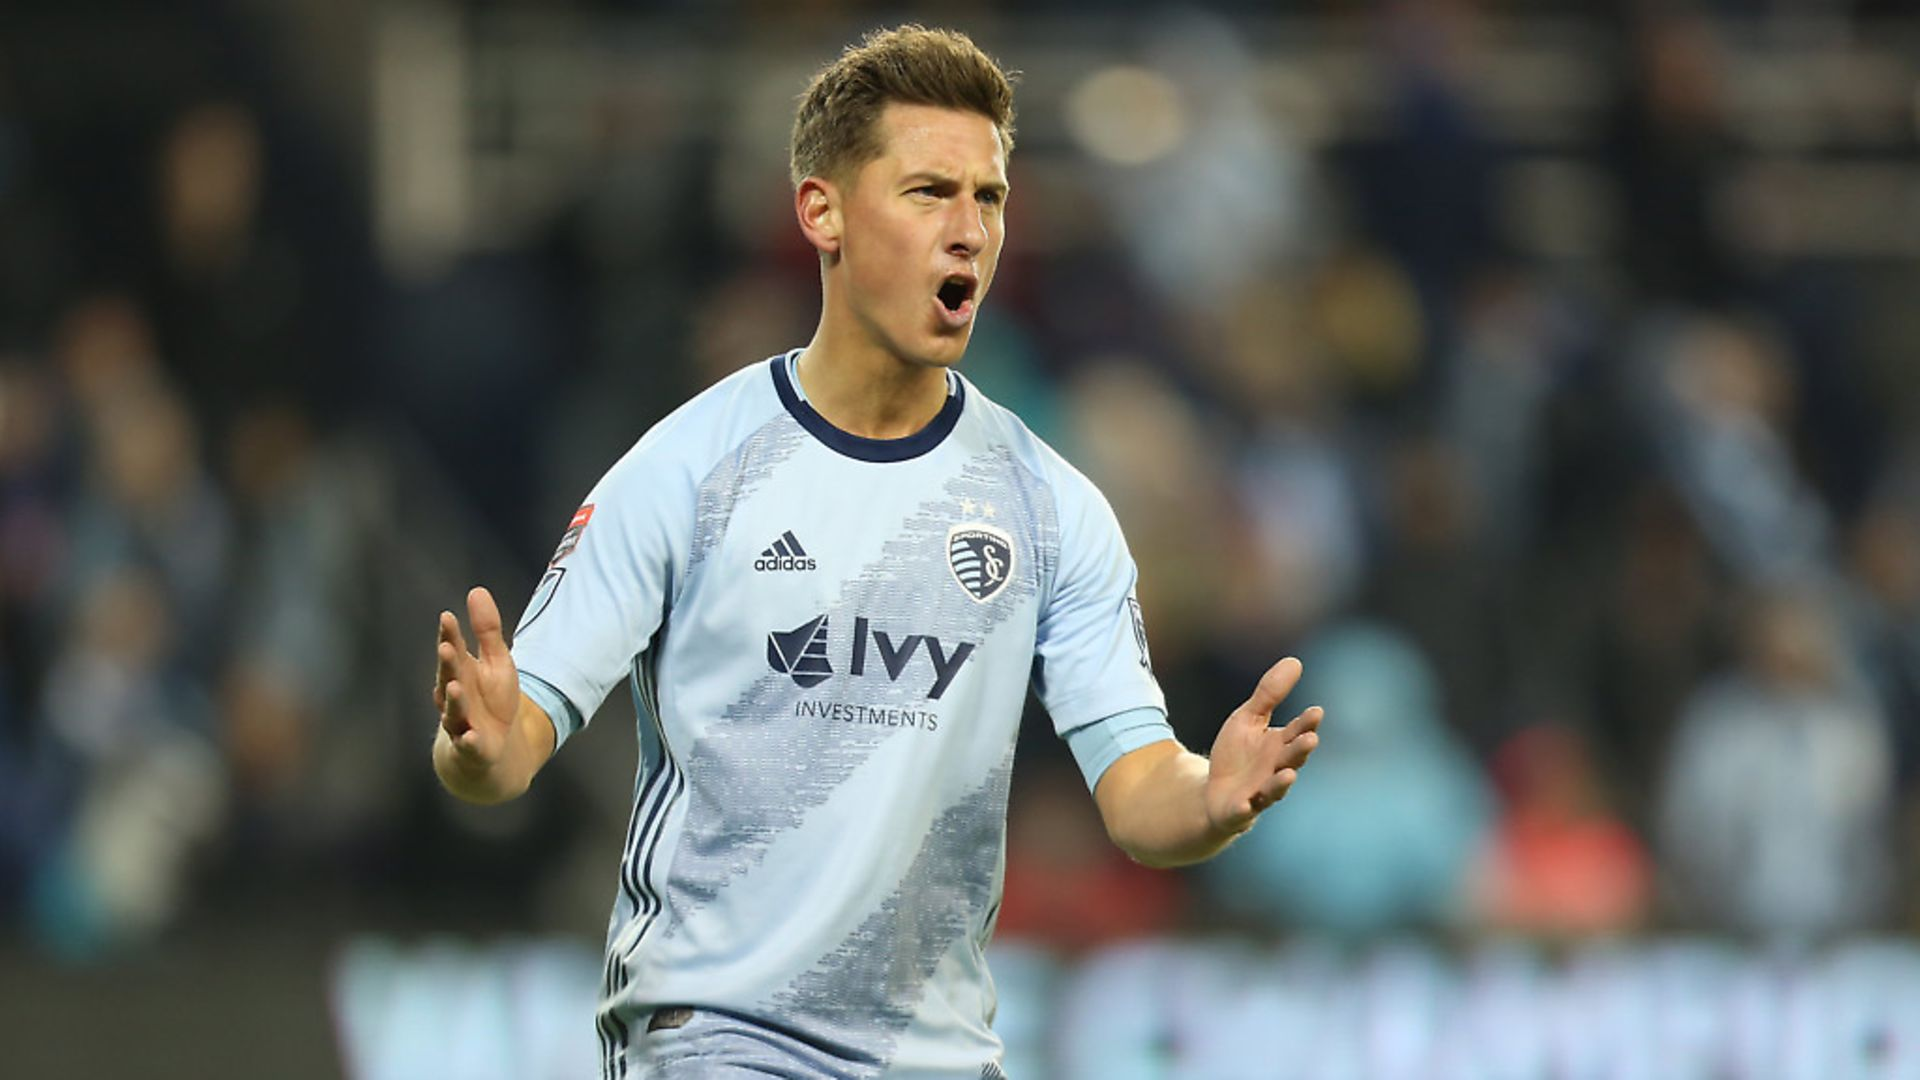 Krisztian Nemeth of Sporting Kansas City reacts after missing a chance to score during the match between Sporting Kansas City and Toluca as part of the CONCACAF Champions League 2019 at Children's Mercy Park on February 21, 2019 in Kansas City, Kansas. (Photo by Omar Vega/Getty Images) - Credit: Getty Images